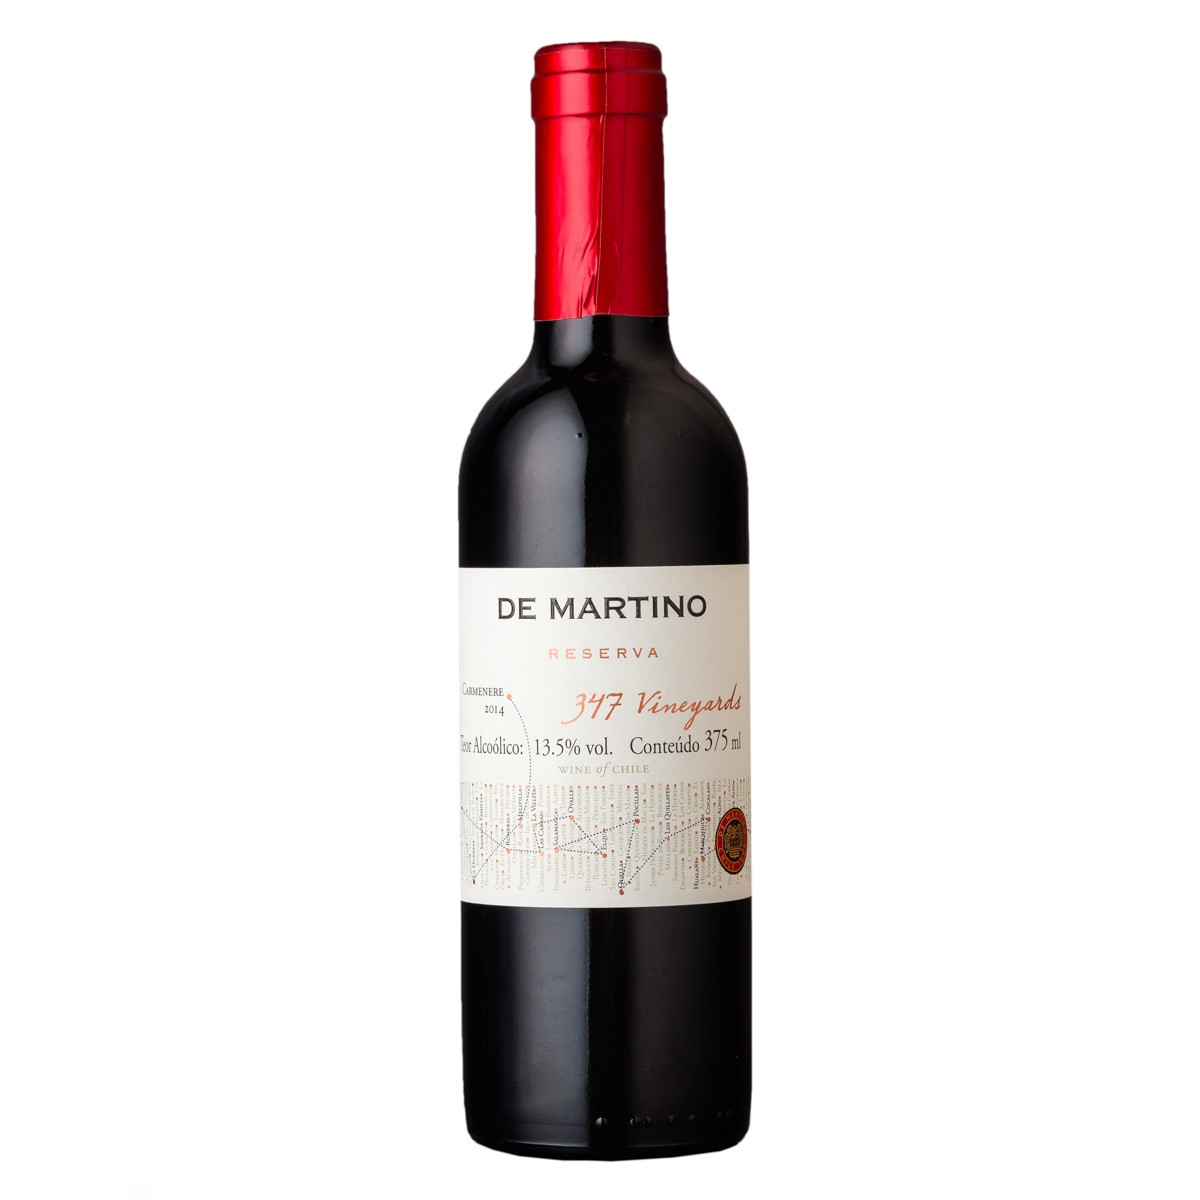 De Martino Carmenere Reserva 347 Vineyards 375 ml